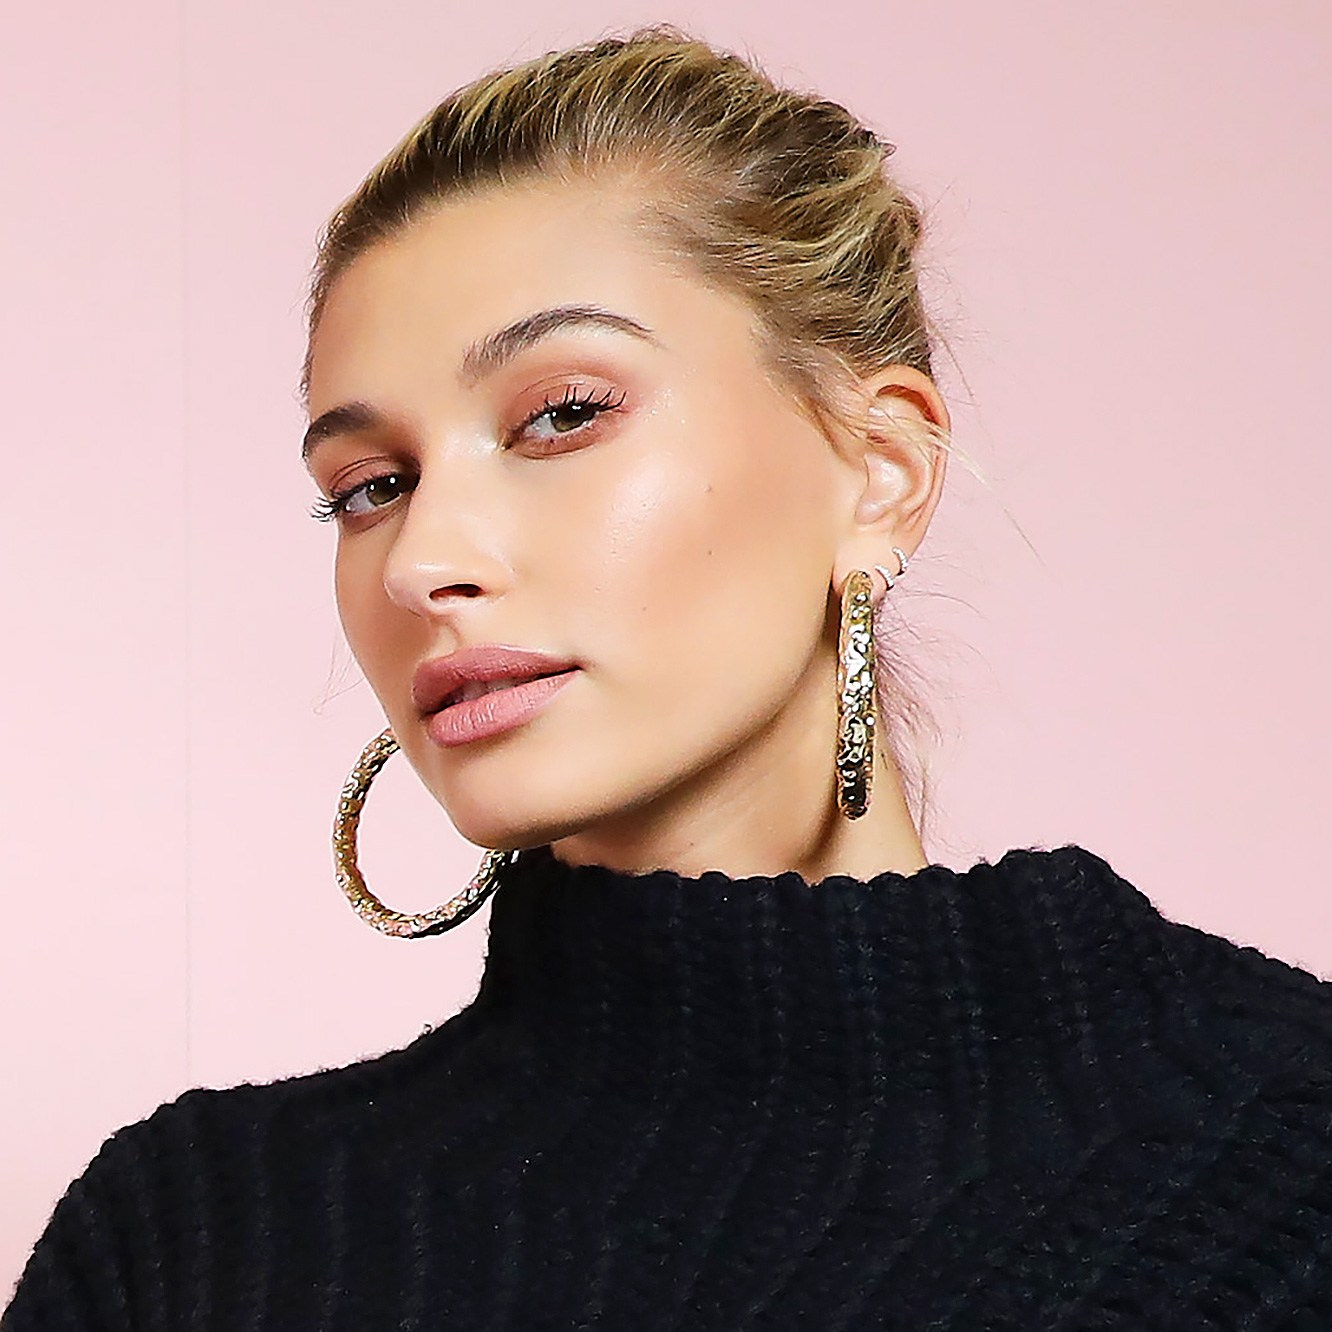 Hailey Baldwin, UsWeekly Celebrity Biography